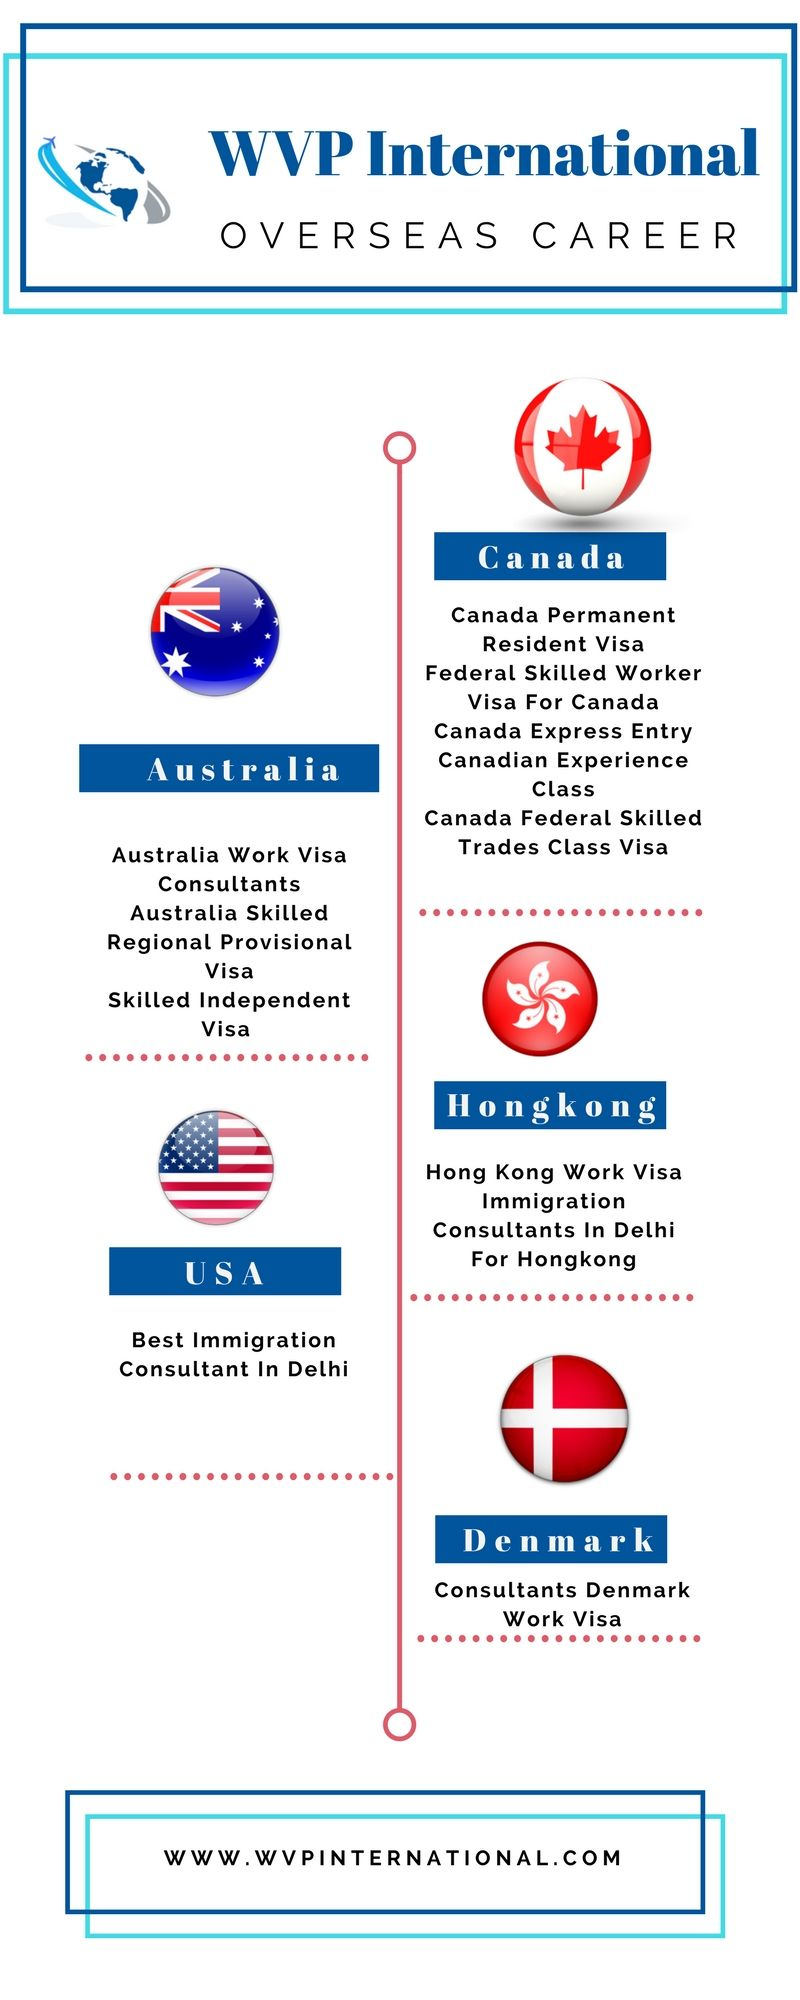 Wvp international wvp international as delhi best immigration consultant also provides post landing services will be an added advantage in your new country